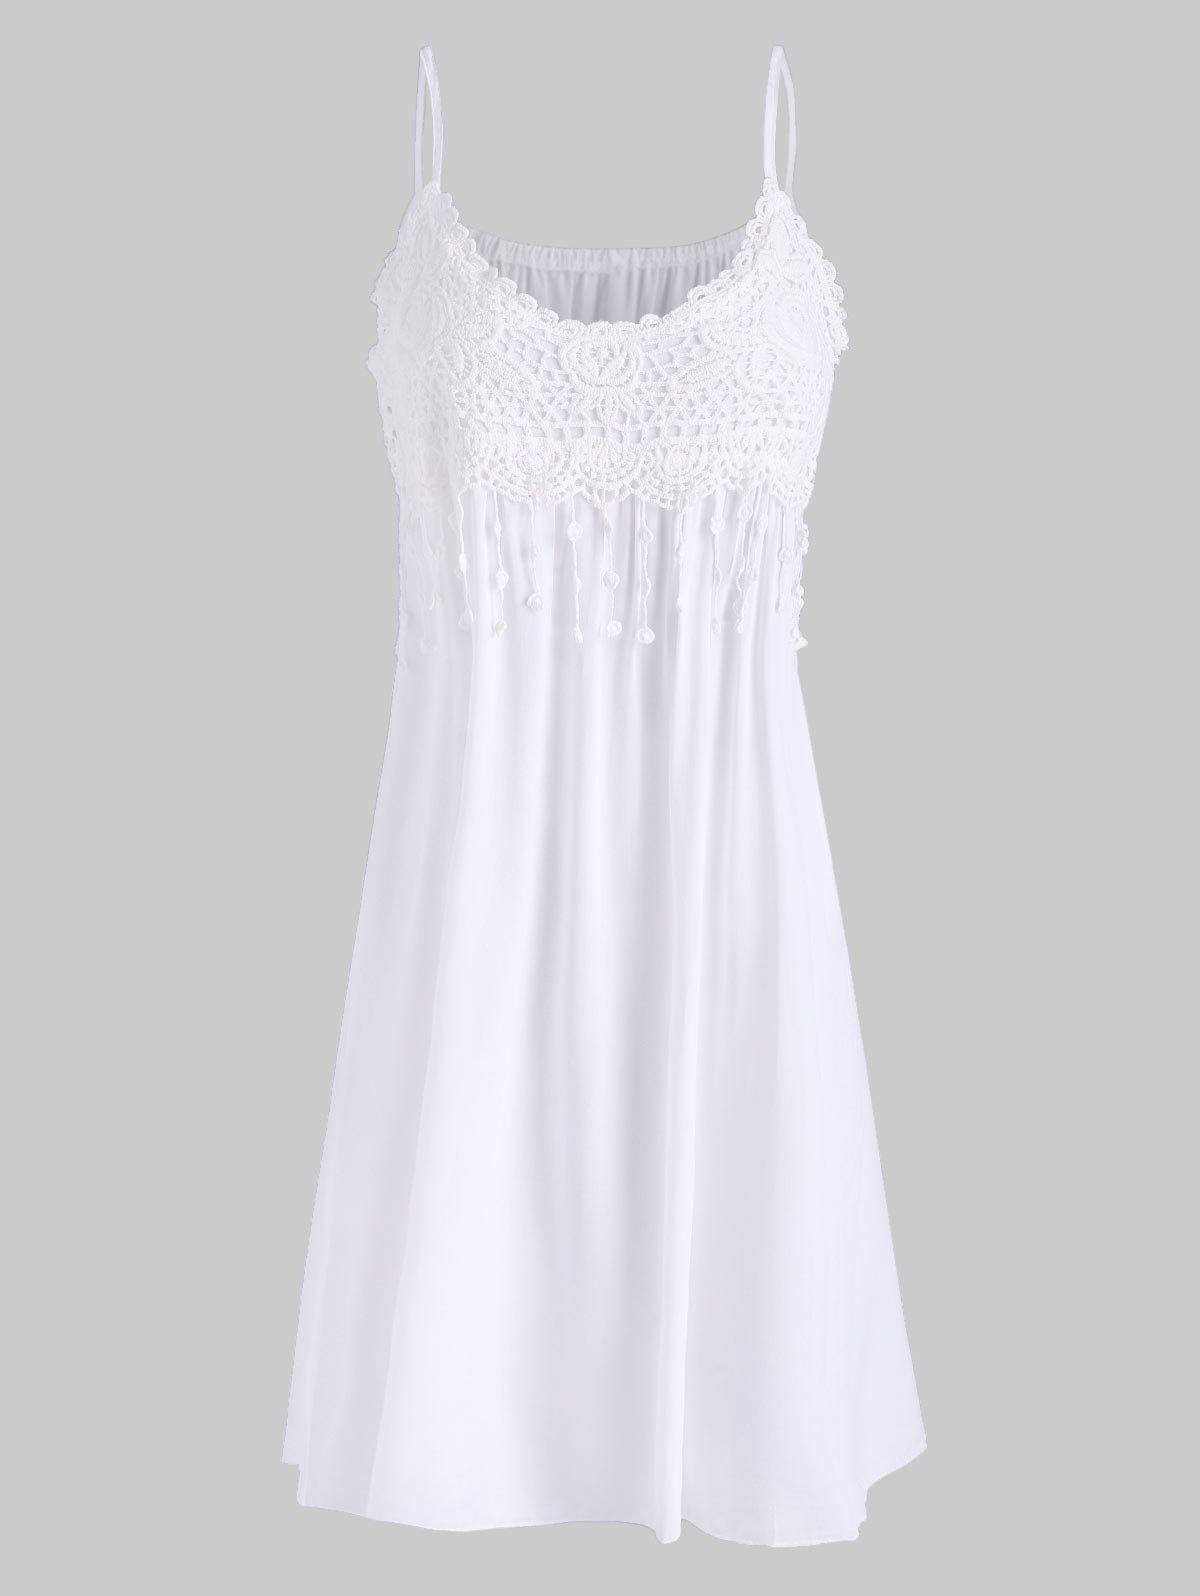 Cami Crochet Lace Panel Mini Dress - WHITE S